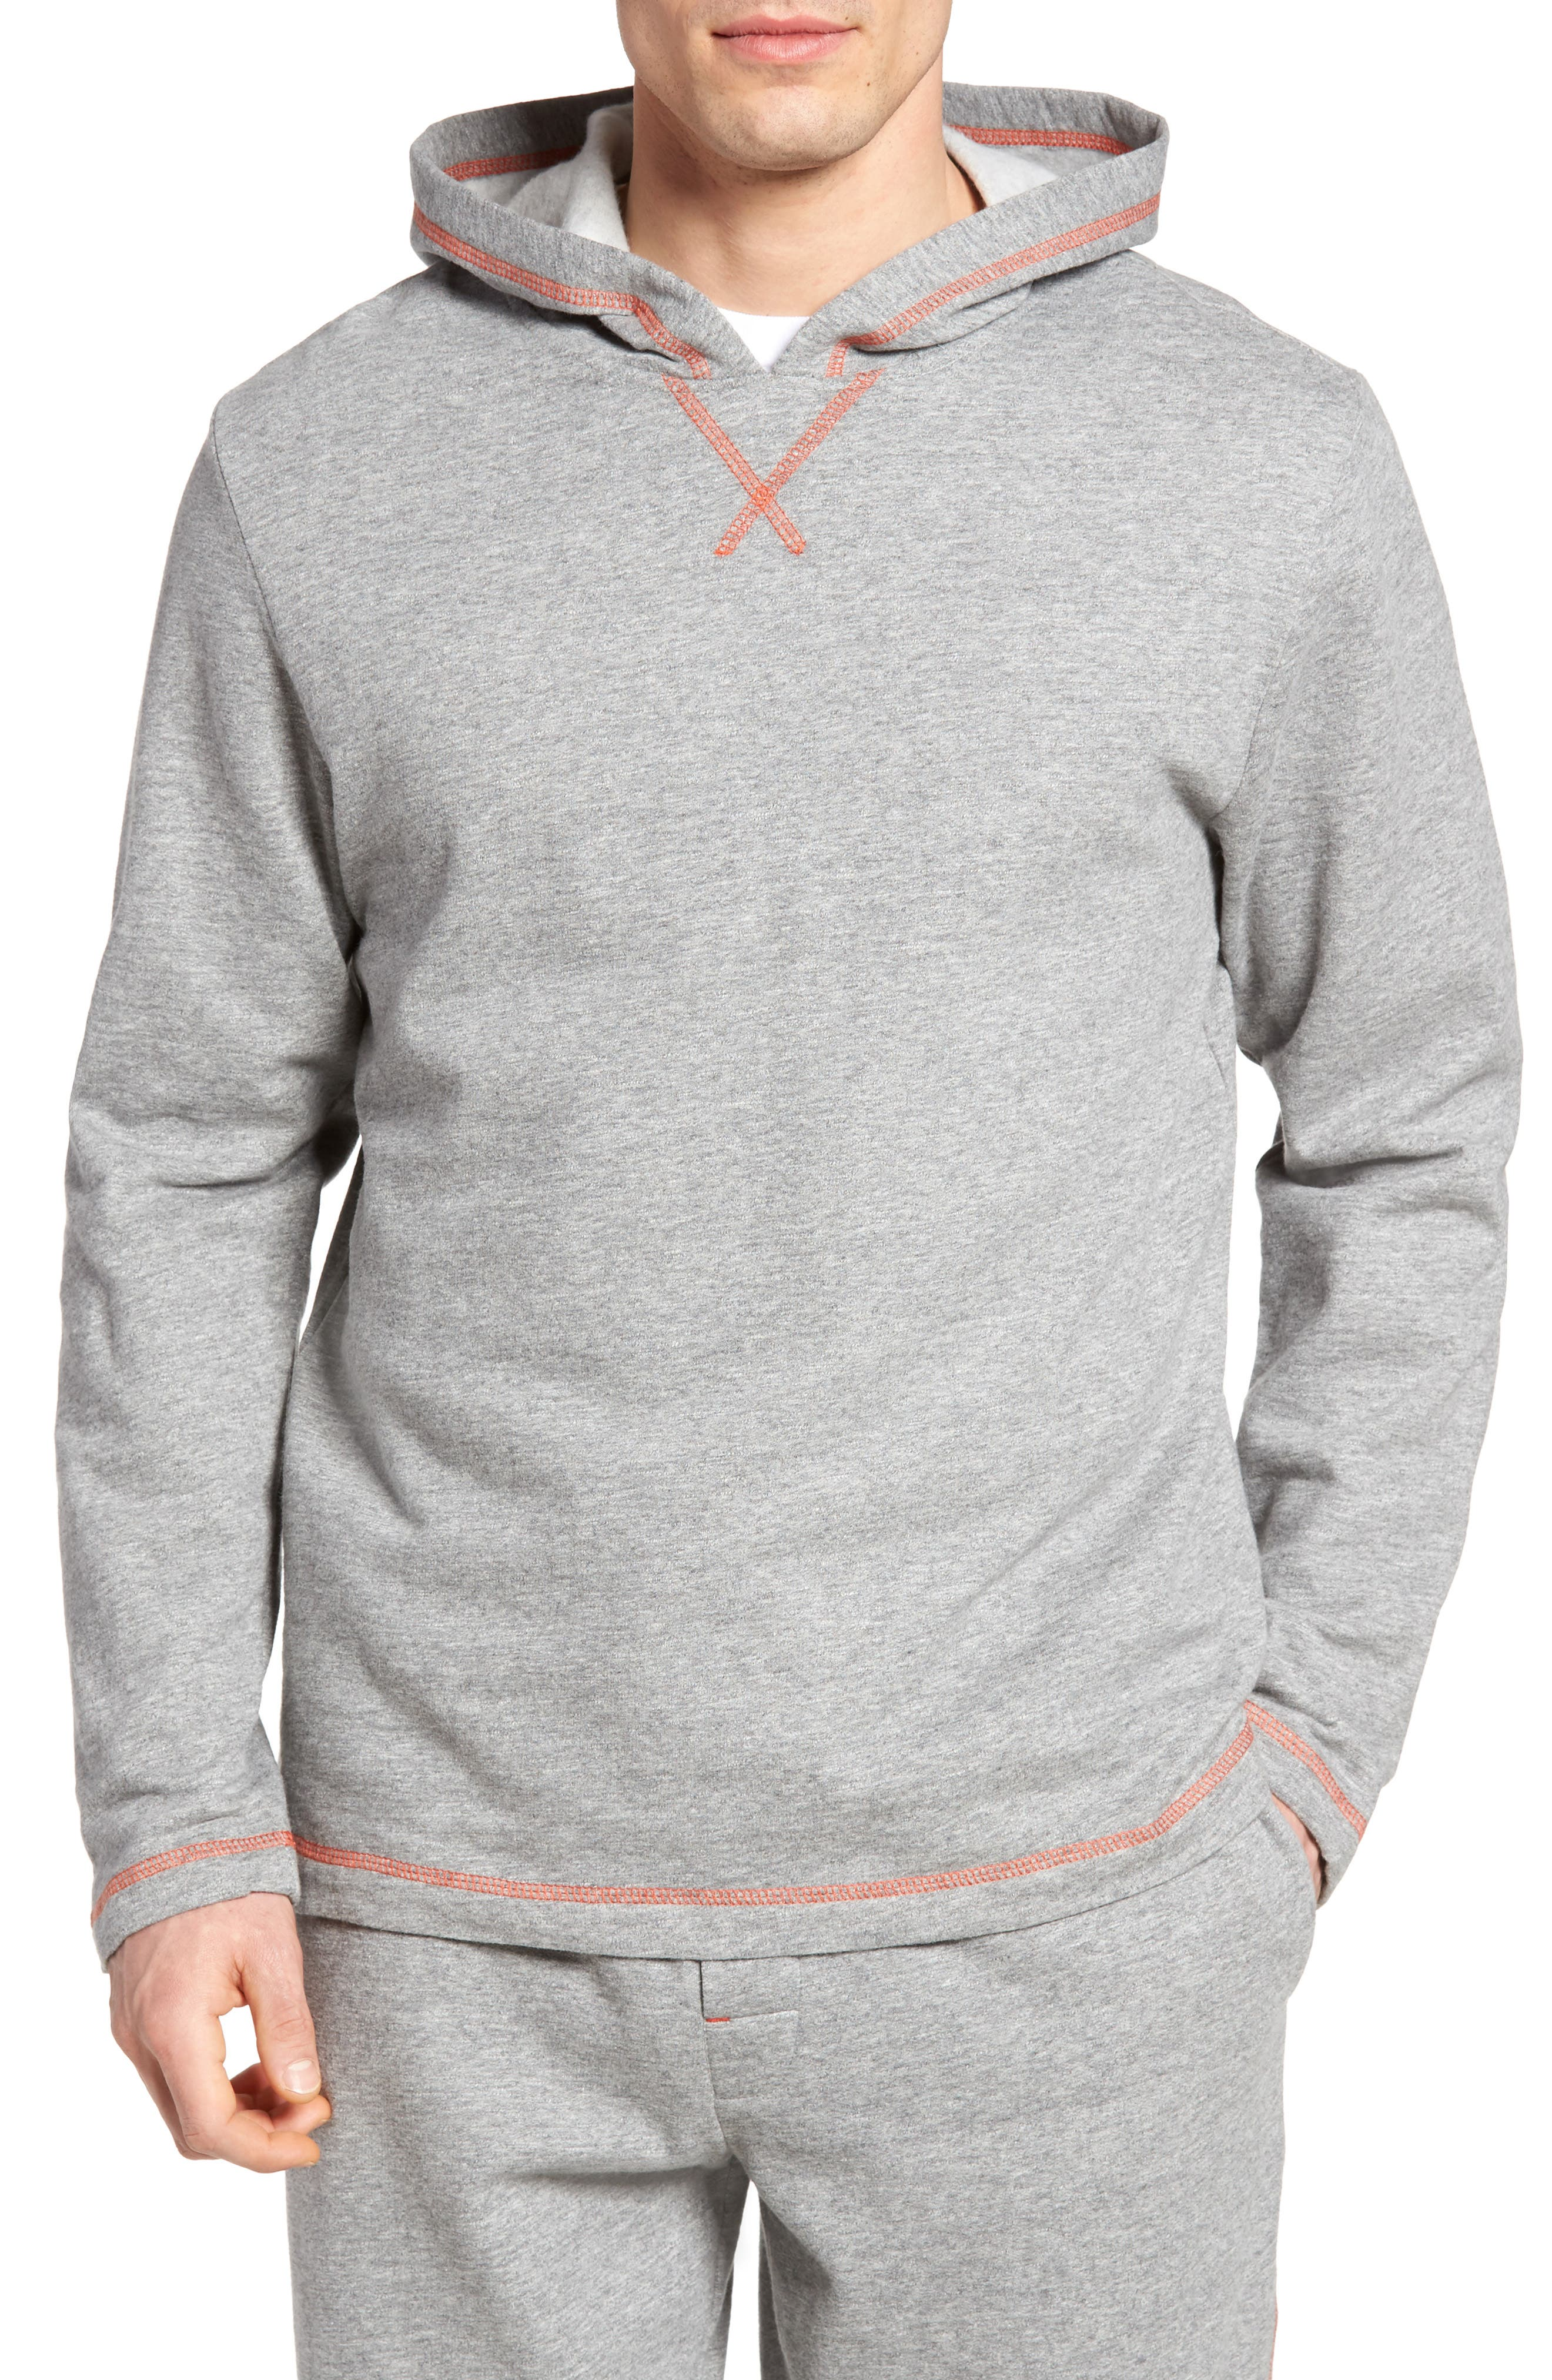 Bhooka Cotton Blend Hoodie,                         Main,                         color, 020